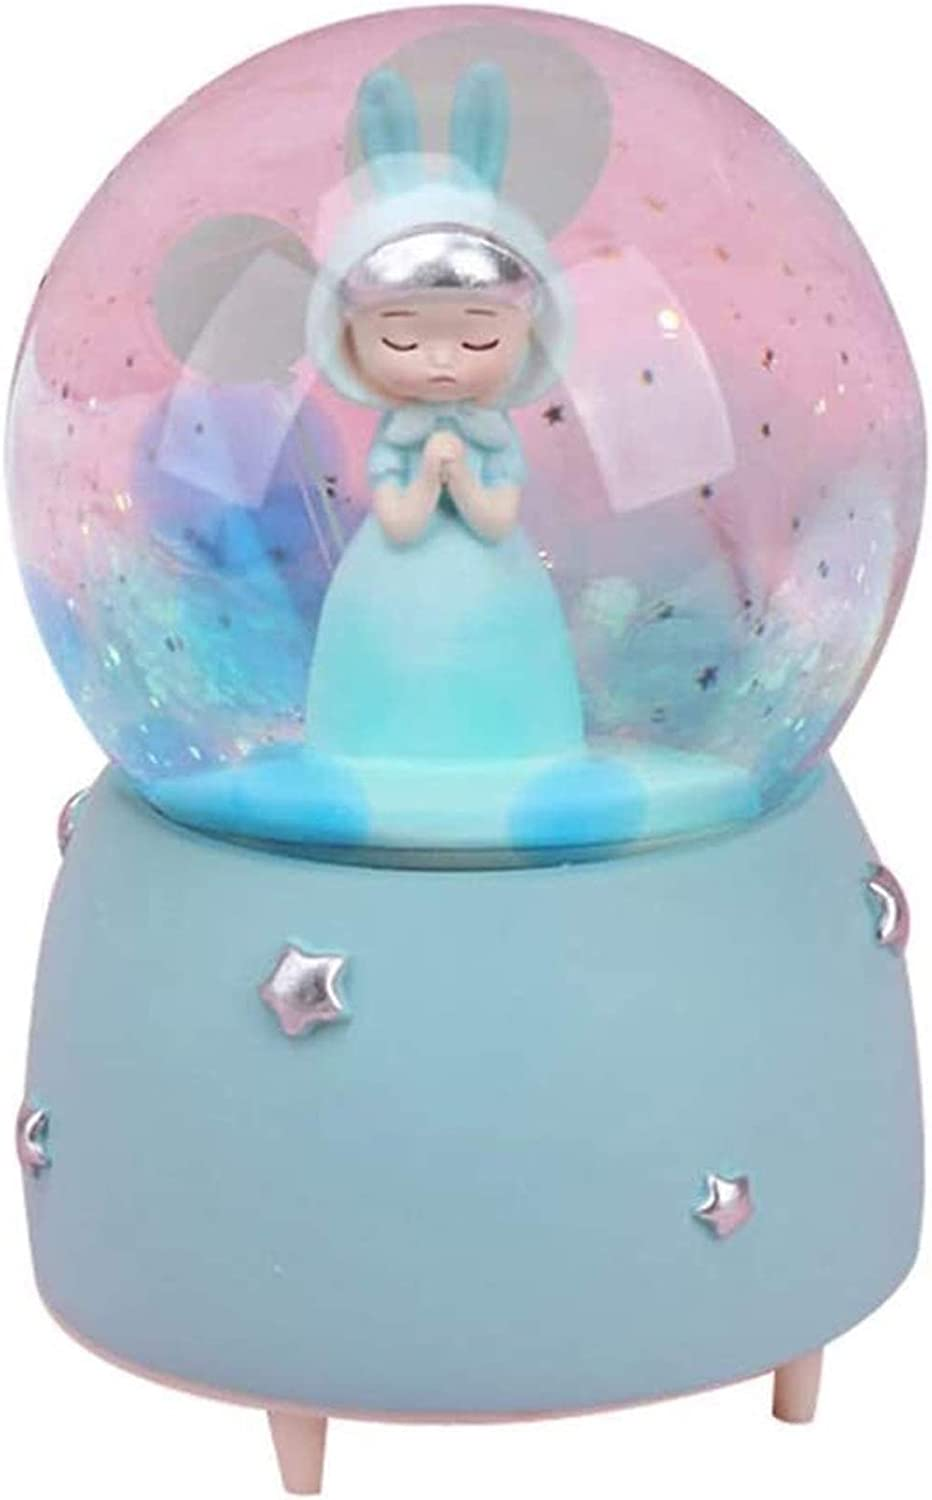 Tucson Mall Plztou Doll Music Box Miniature Crafts Roo Super beauty product restock quality top! Model Home Decoration